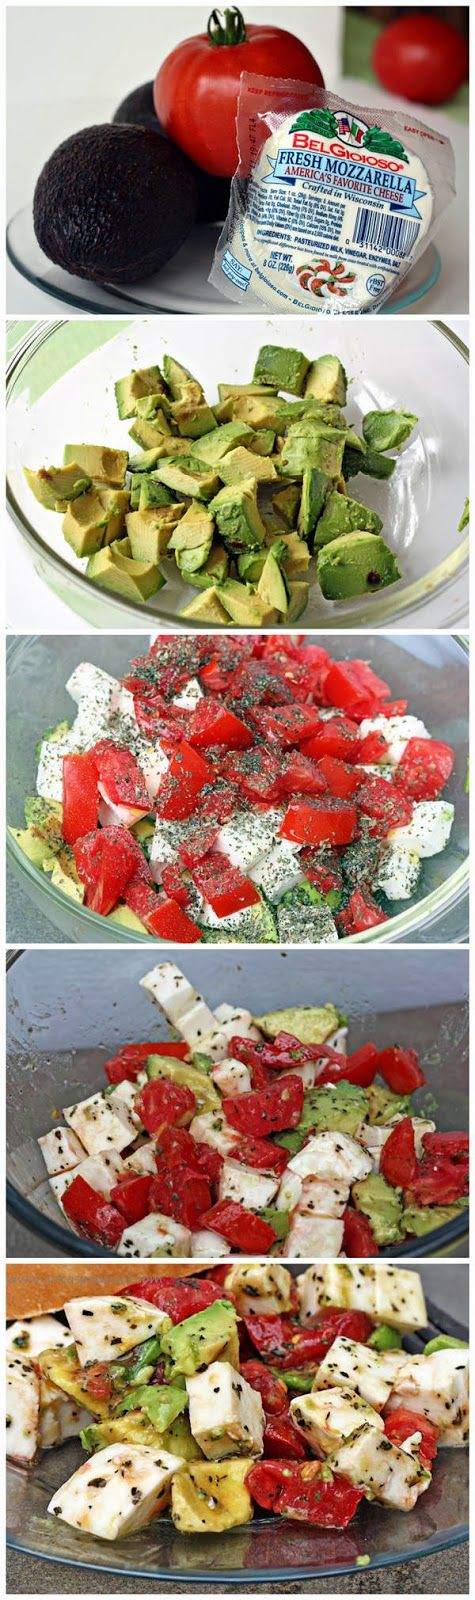 Avocado / Tomato/ Mozzarella Salad.